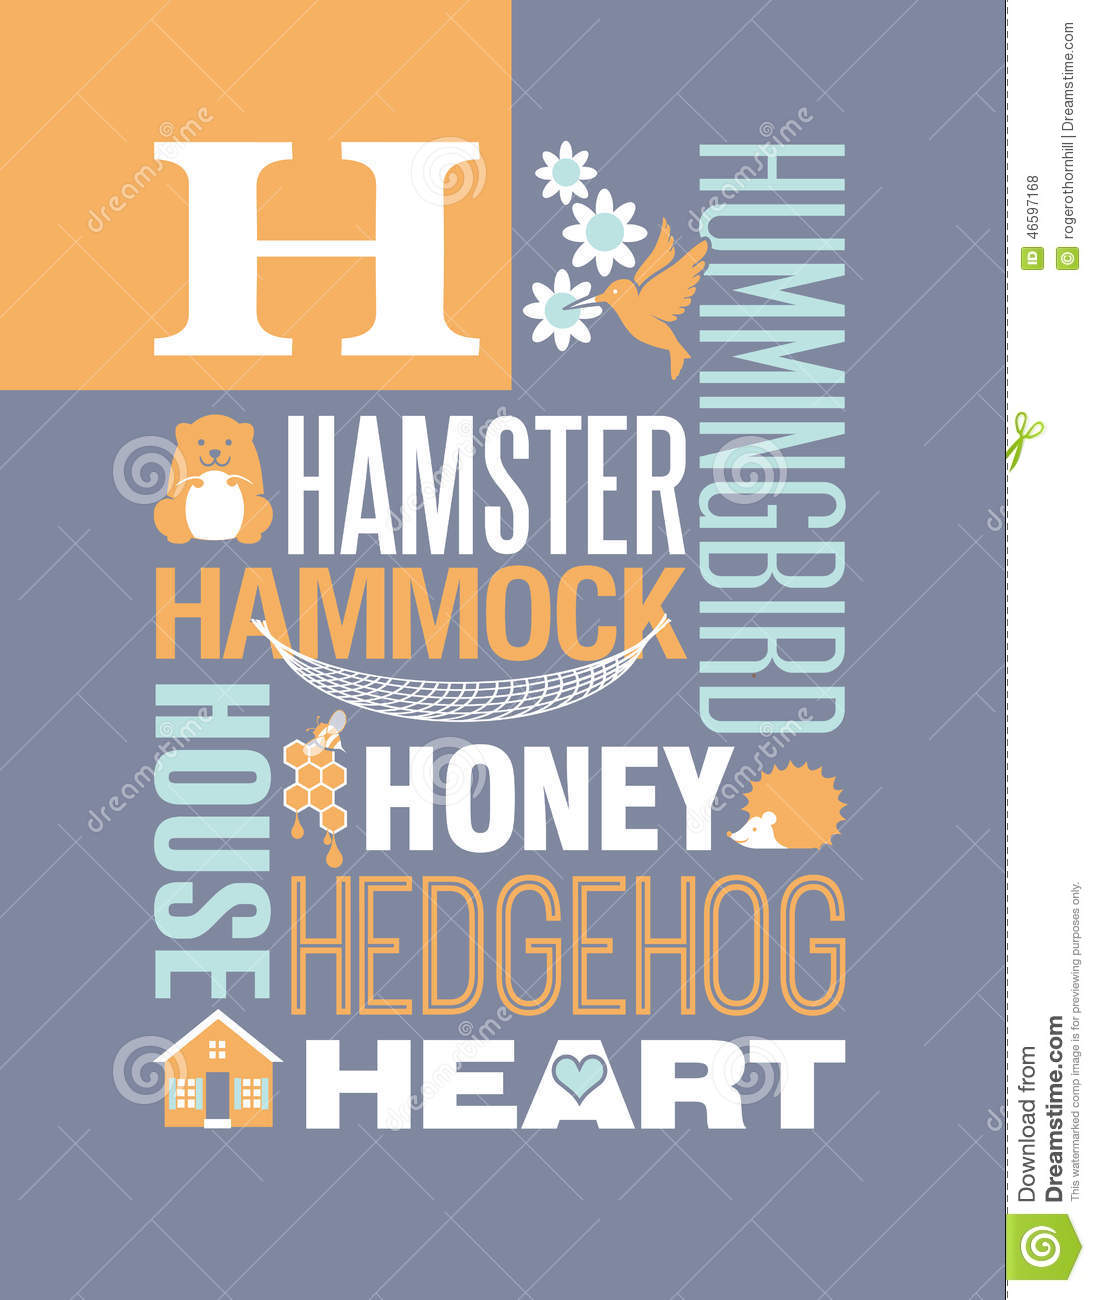 Poster design download - Letter H Words Typography Illustration Alphabet Poster Design Stock Vector Image 46597168